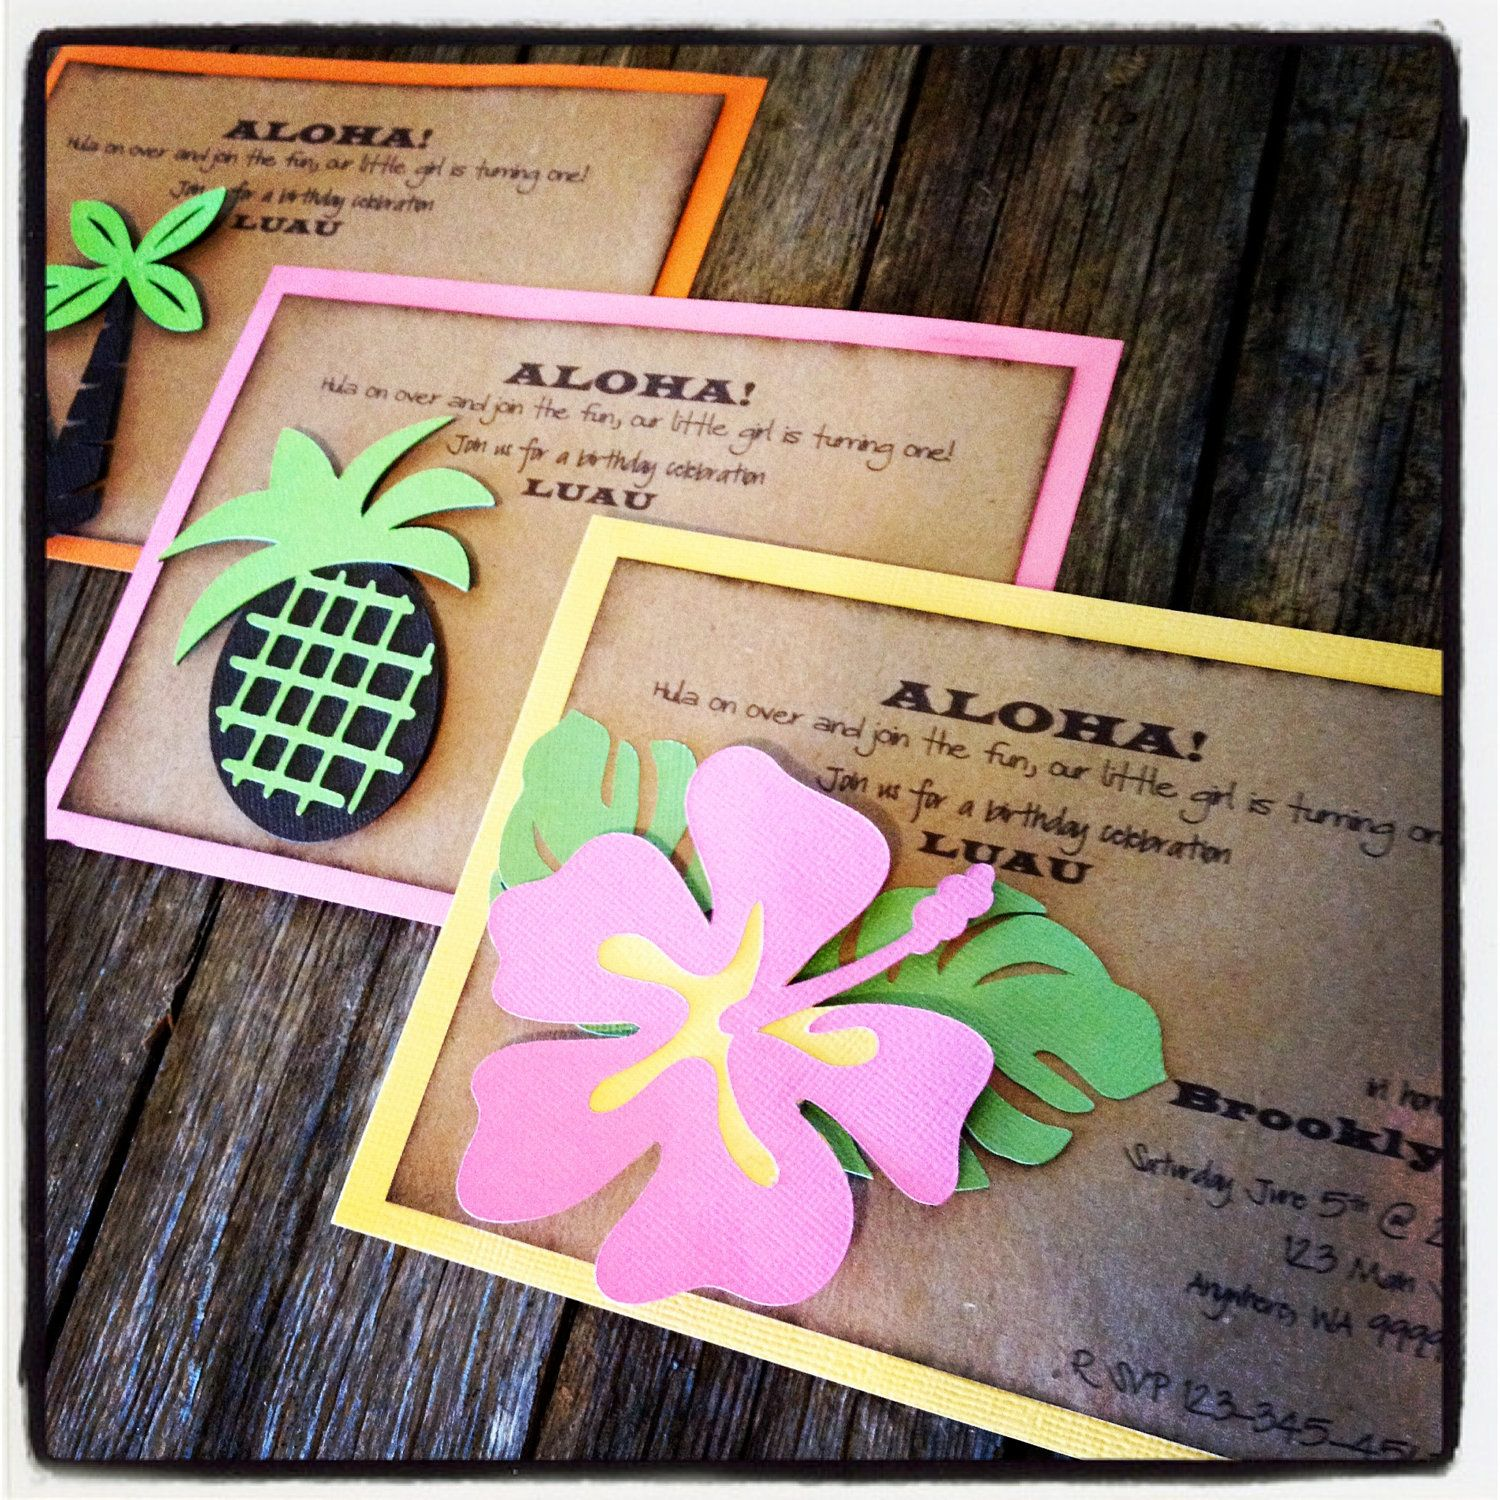 luau hawaiian aloha invitations luau party invites hibiscus flower, invitation samples